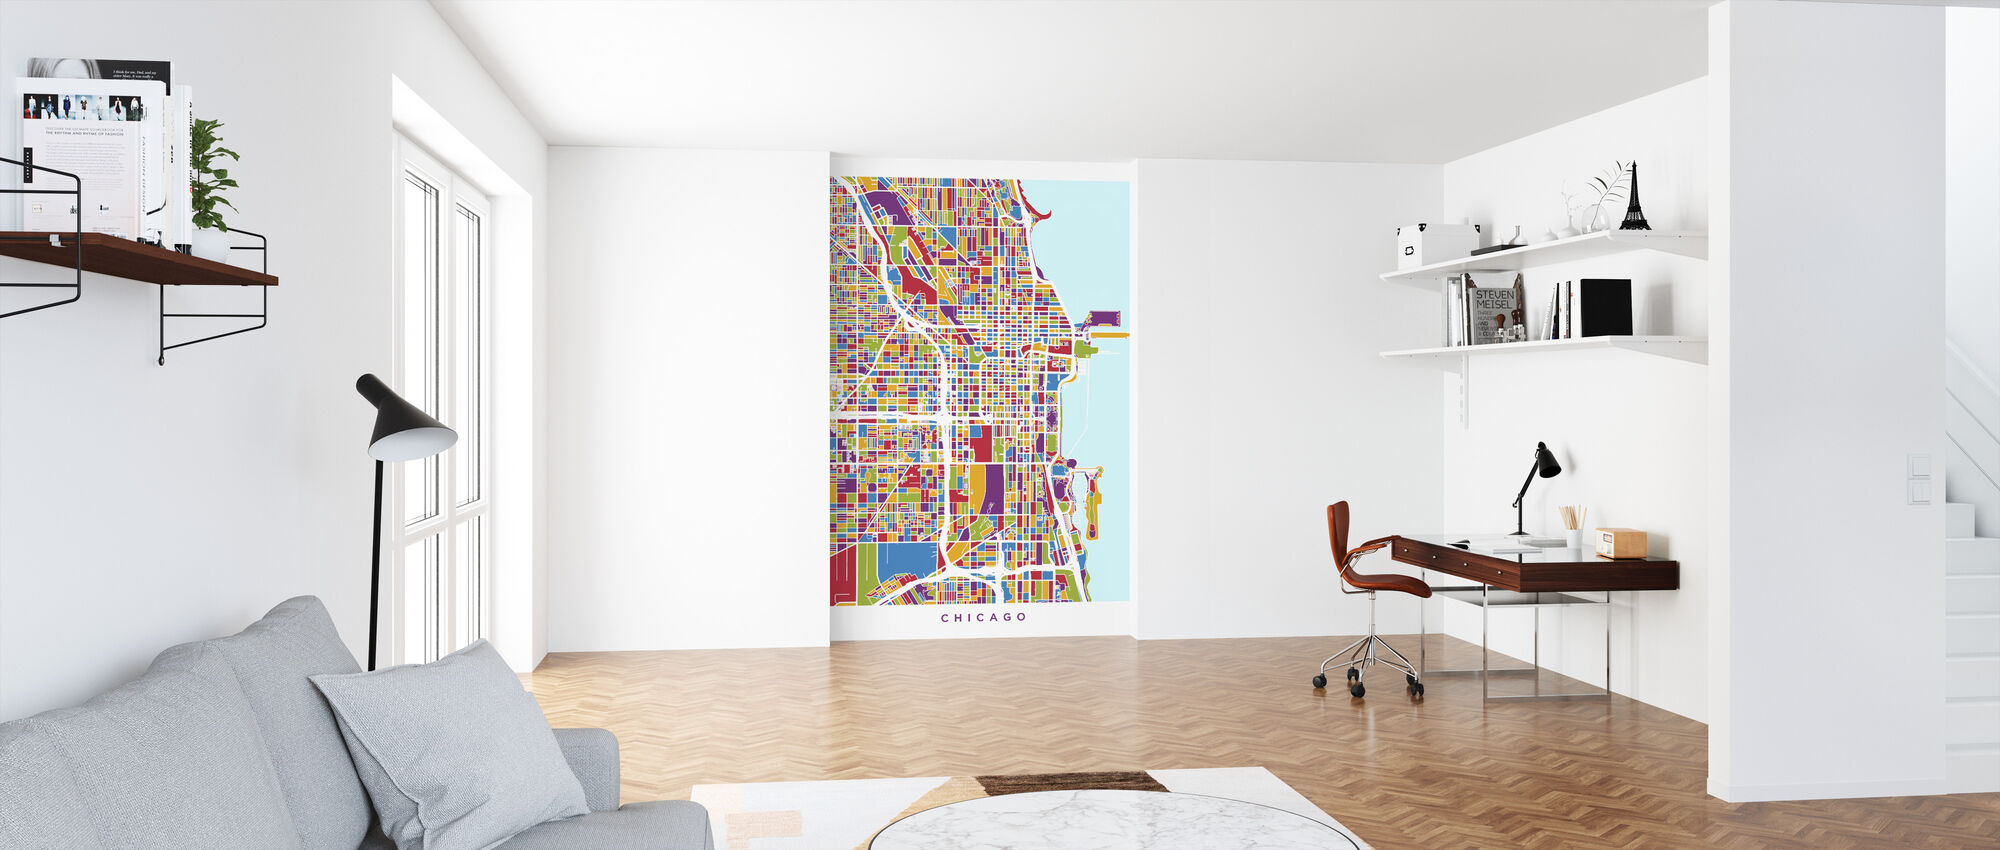 Chicago City Street Kaart - Behang - Kantoor